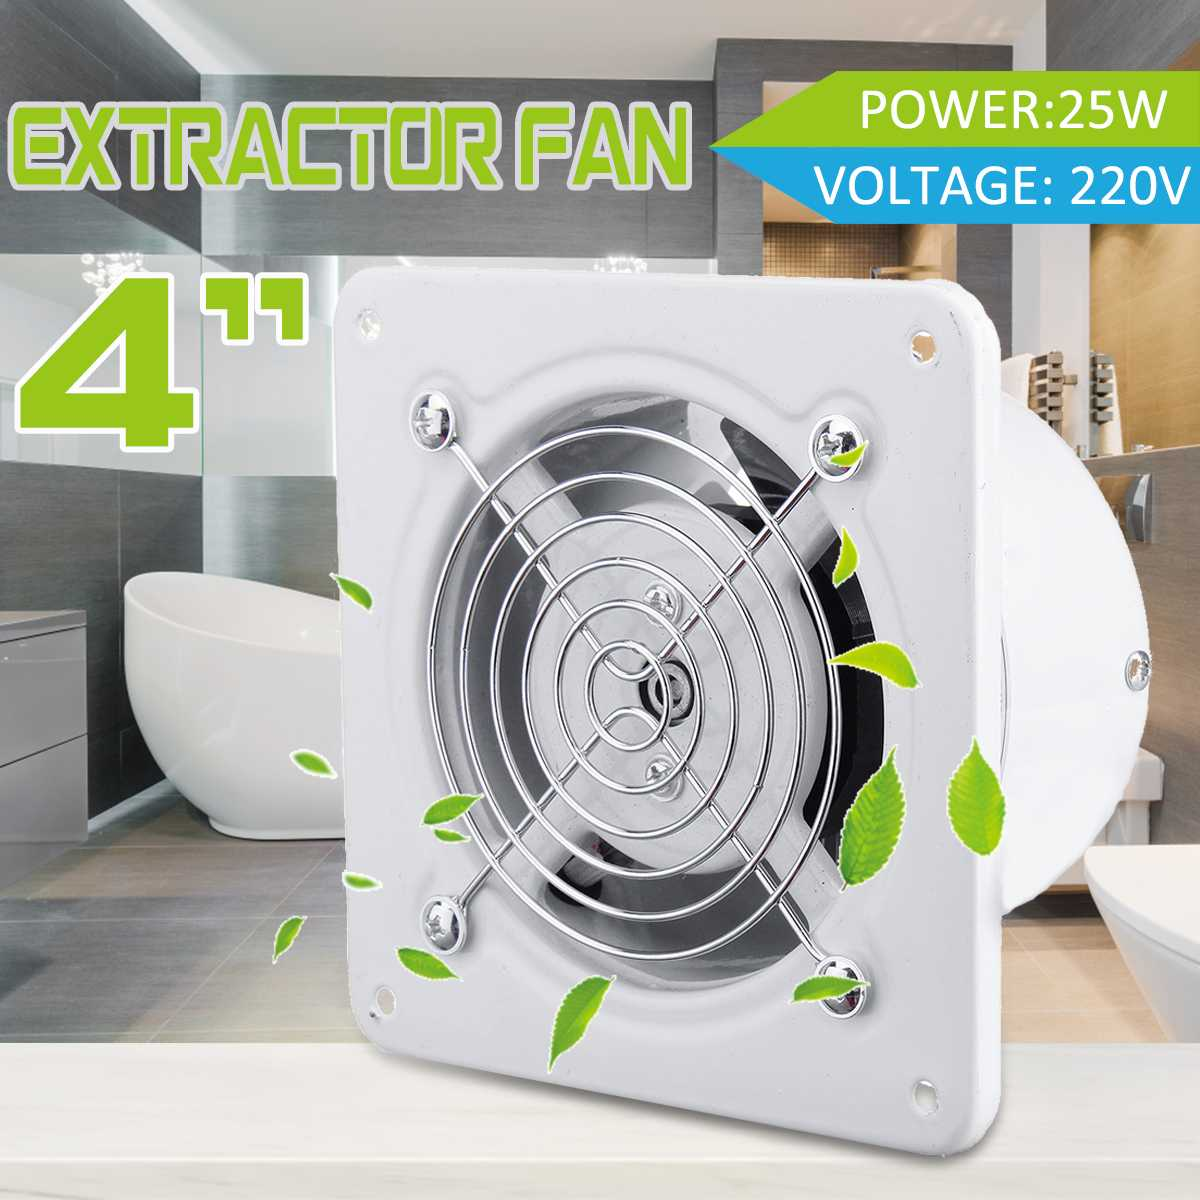 Ventilation Fan 6 Bathroom Toilet Wall Ceiling Extractor Fan With Timer Colour Gold 150mm